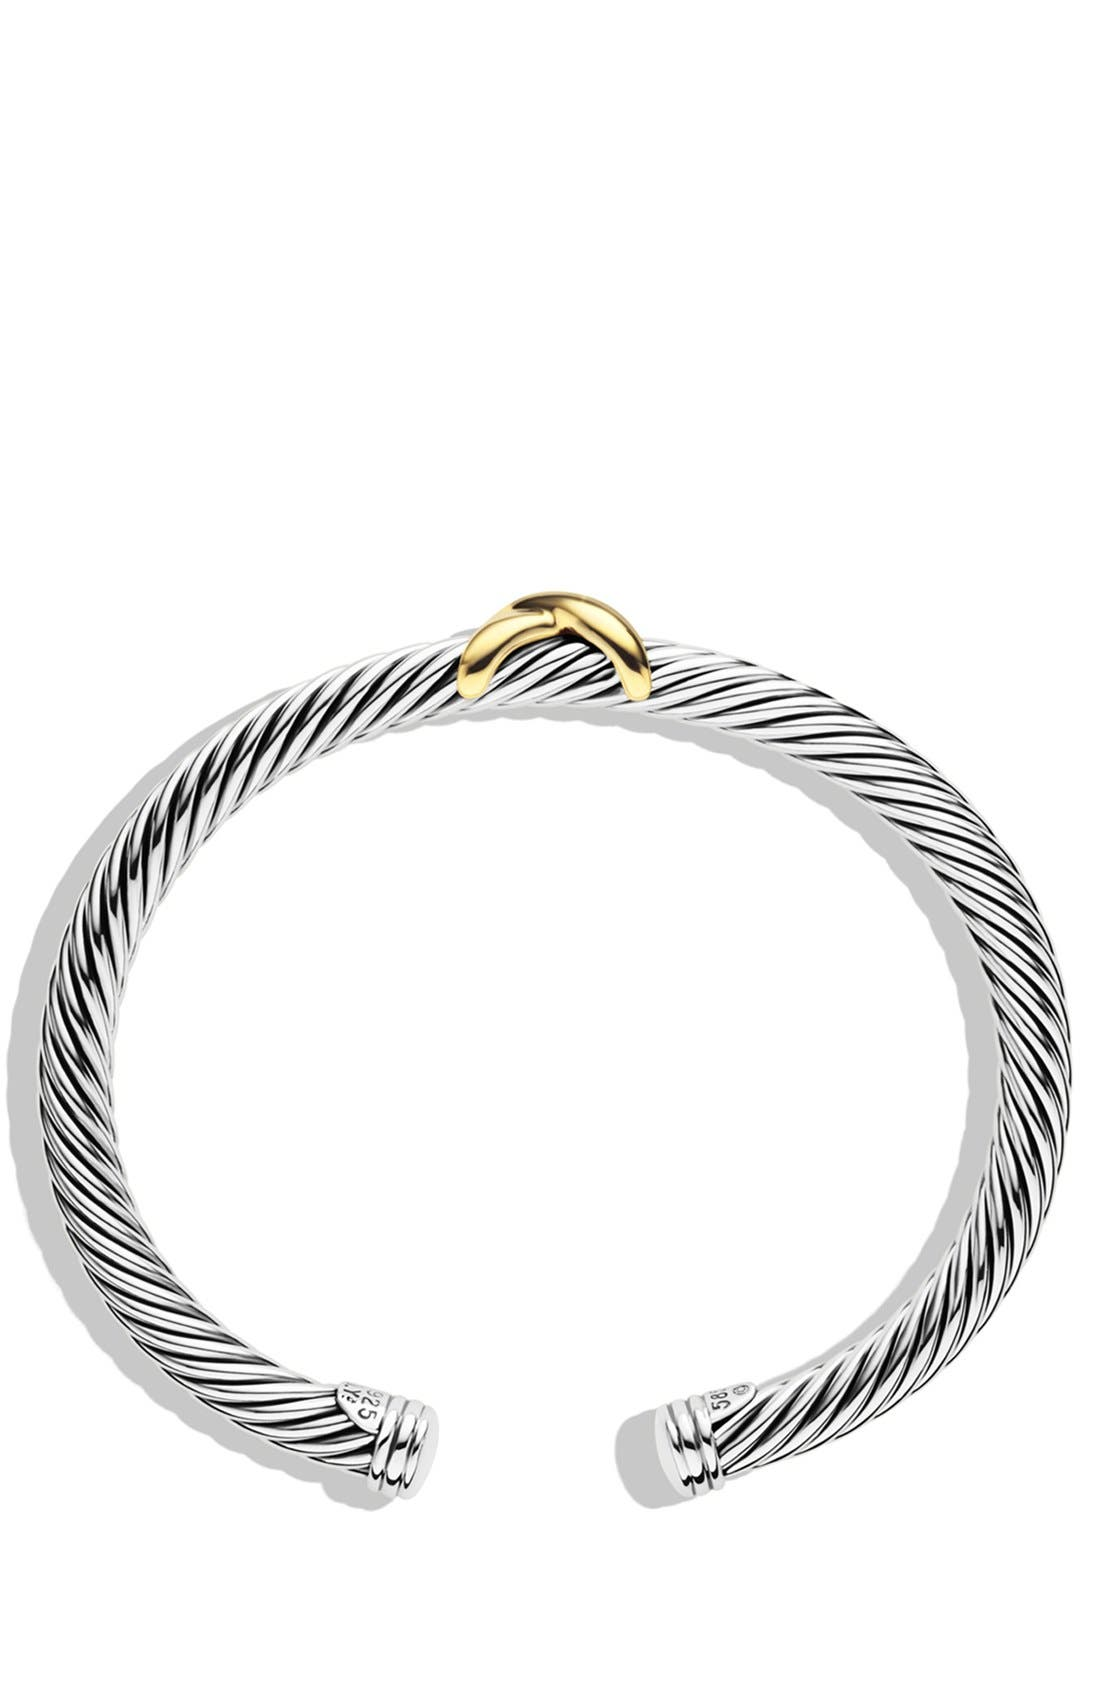 'X' Bracelet with Gold,                             Alternate thumbnail 2, color,                             Two Tone